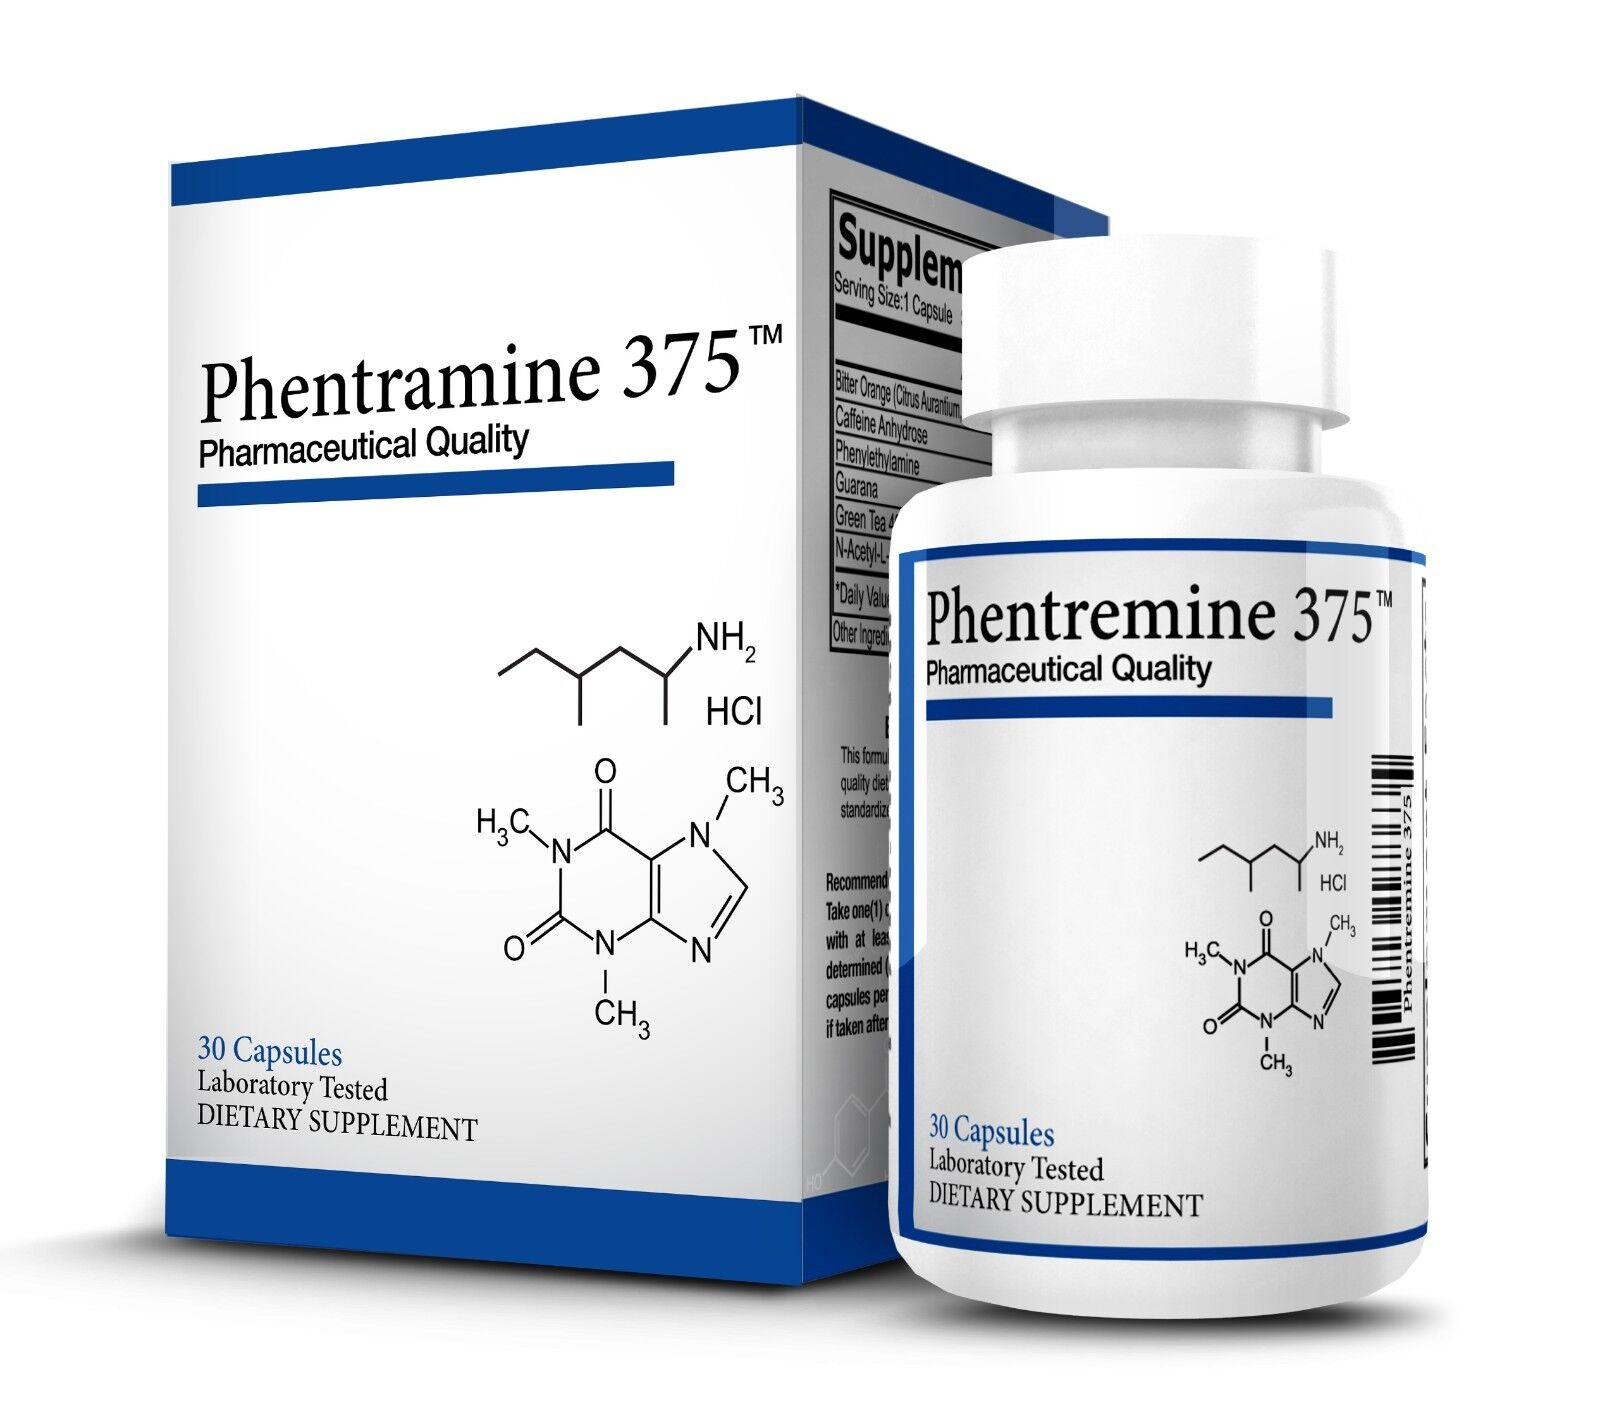 PHENTRAMINE STRONGEST LEGAL APPETITE SUPPRESSANT DIET SLIMMING WEIGHT LOSS PILLS Single Bottle